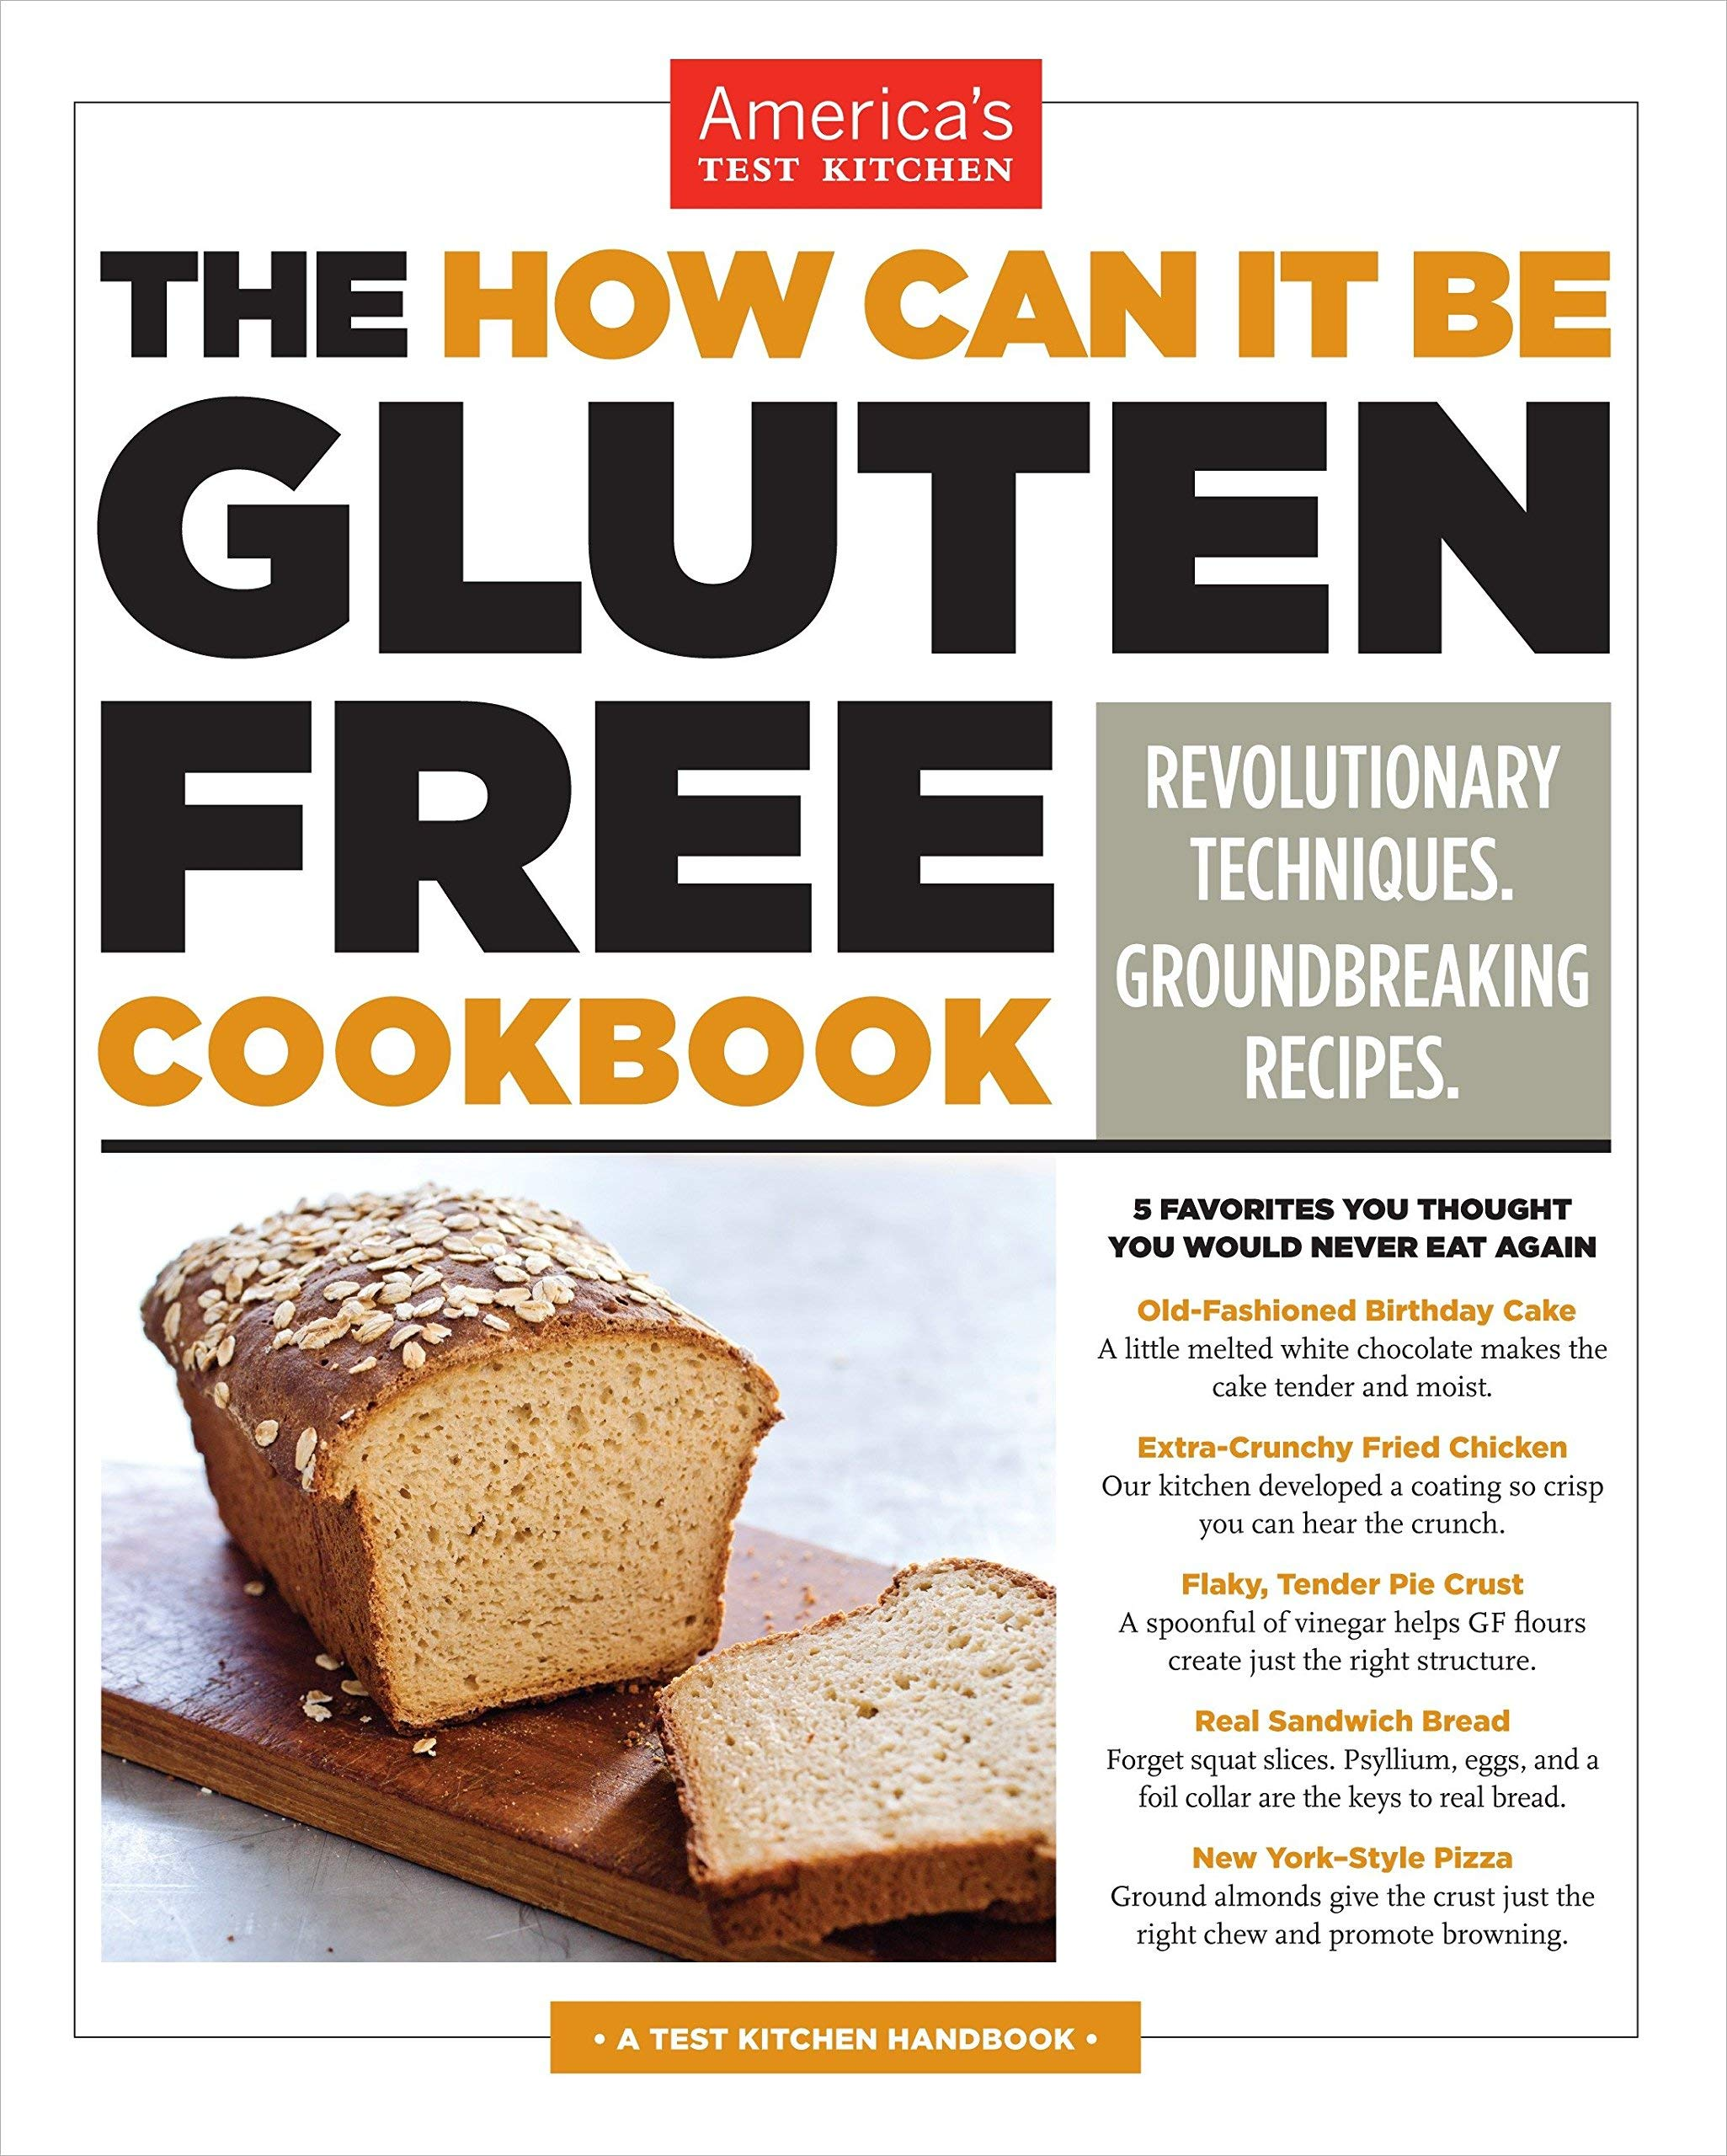 The How Can It Be Gluten Free Cookbook: Revolutionary Techniques. Groundbreaking Recipes. by America's Test Kitchen